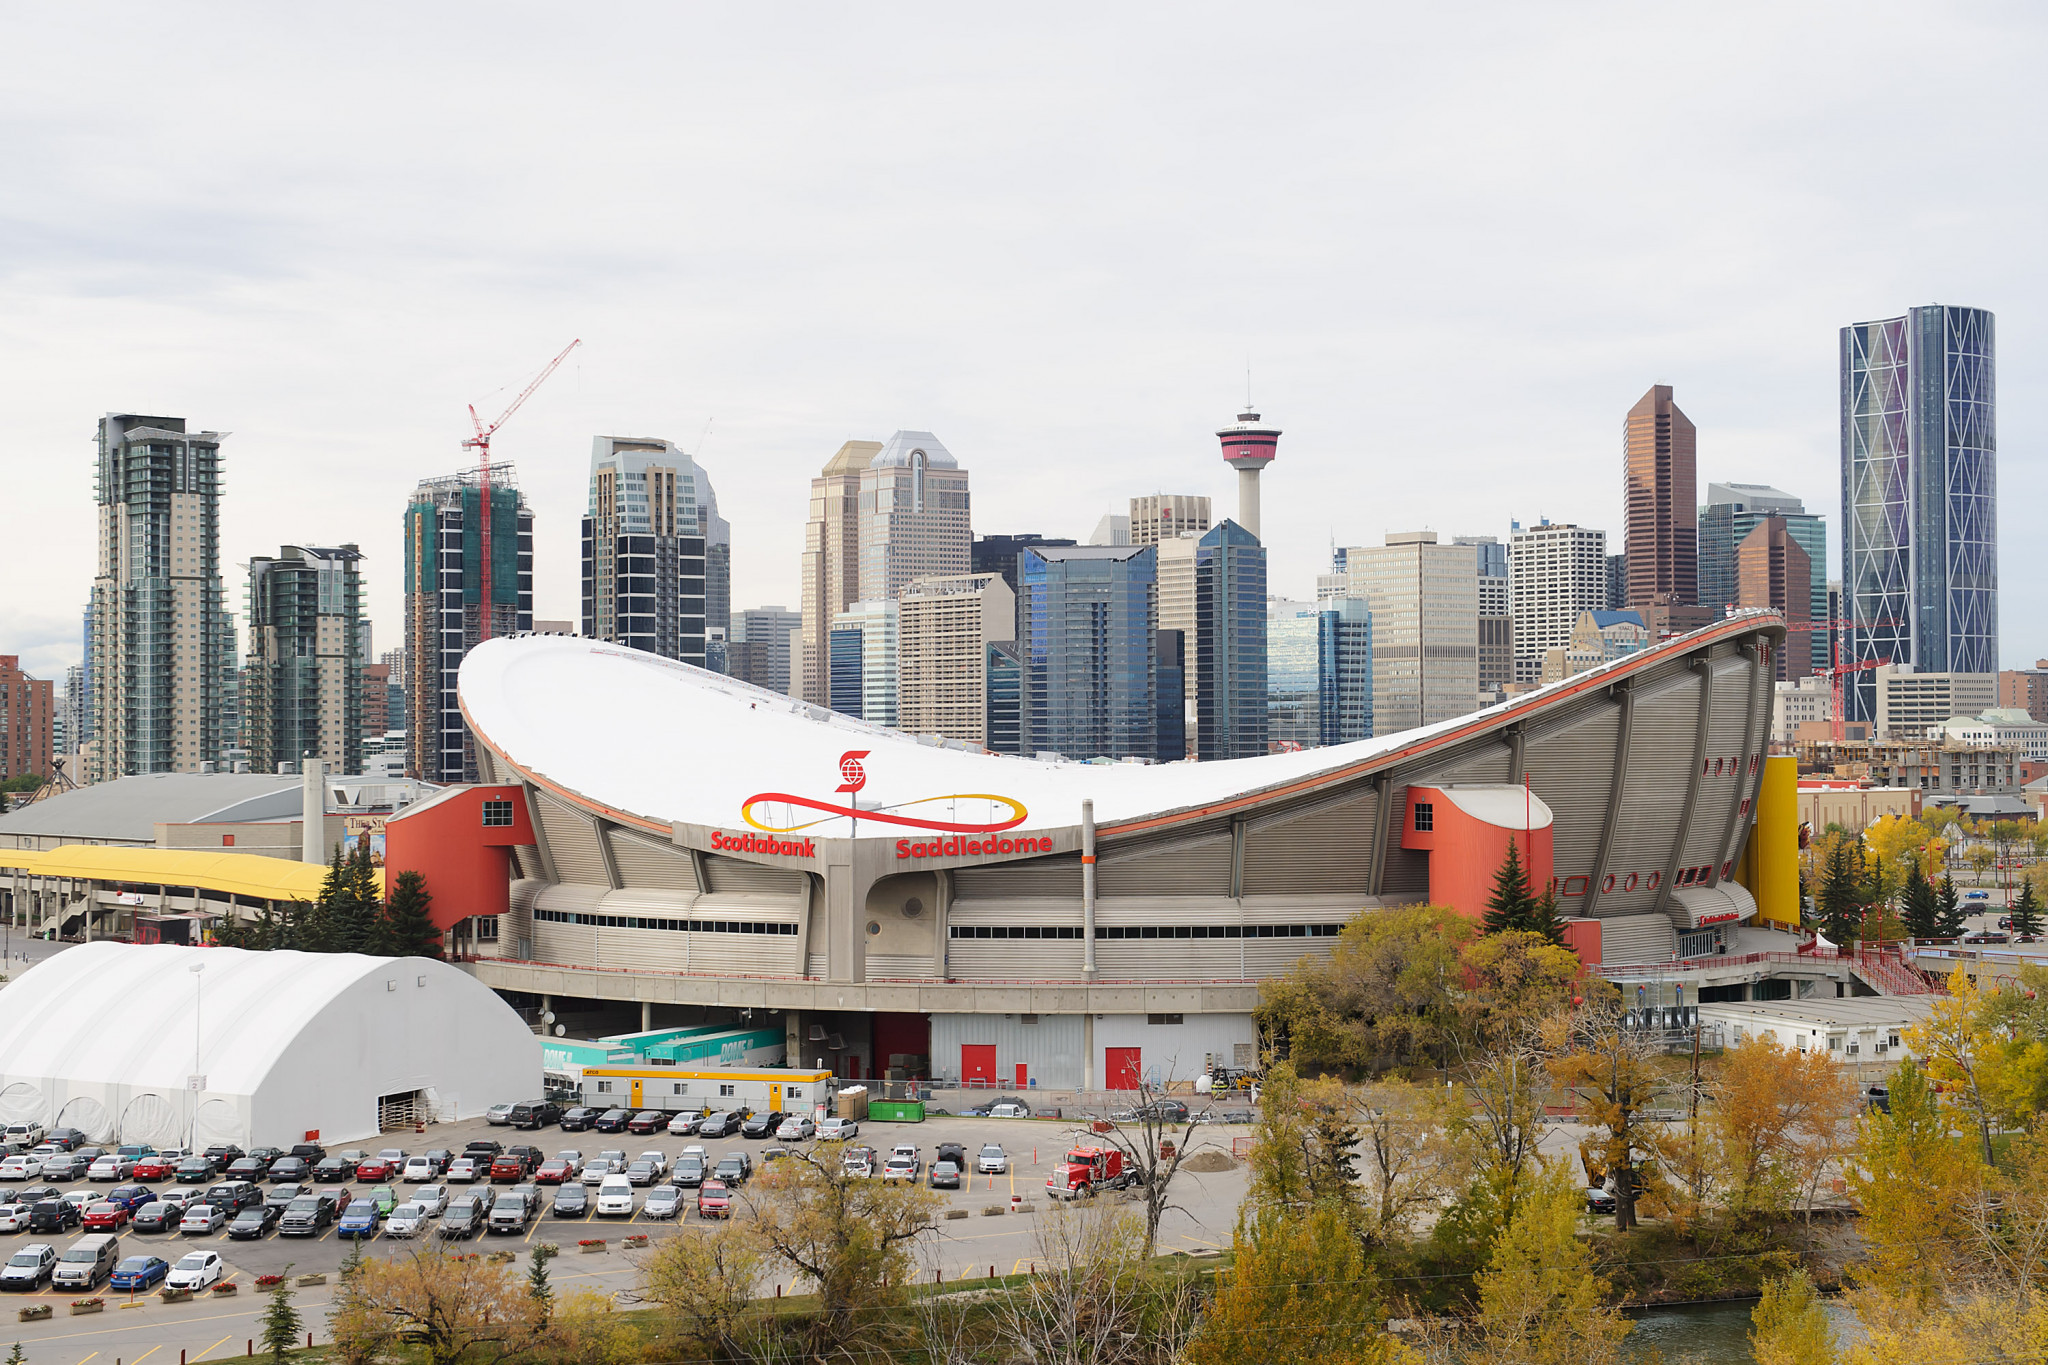 Calgary 2026 has announced the signing of an agreement between the Federal and Provincial Governments to consider a funding proposal that would provide their share of the public dollars needed to stage the Winter Olympics and Paralympics ©Getty Images